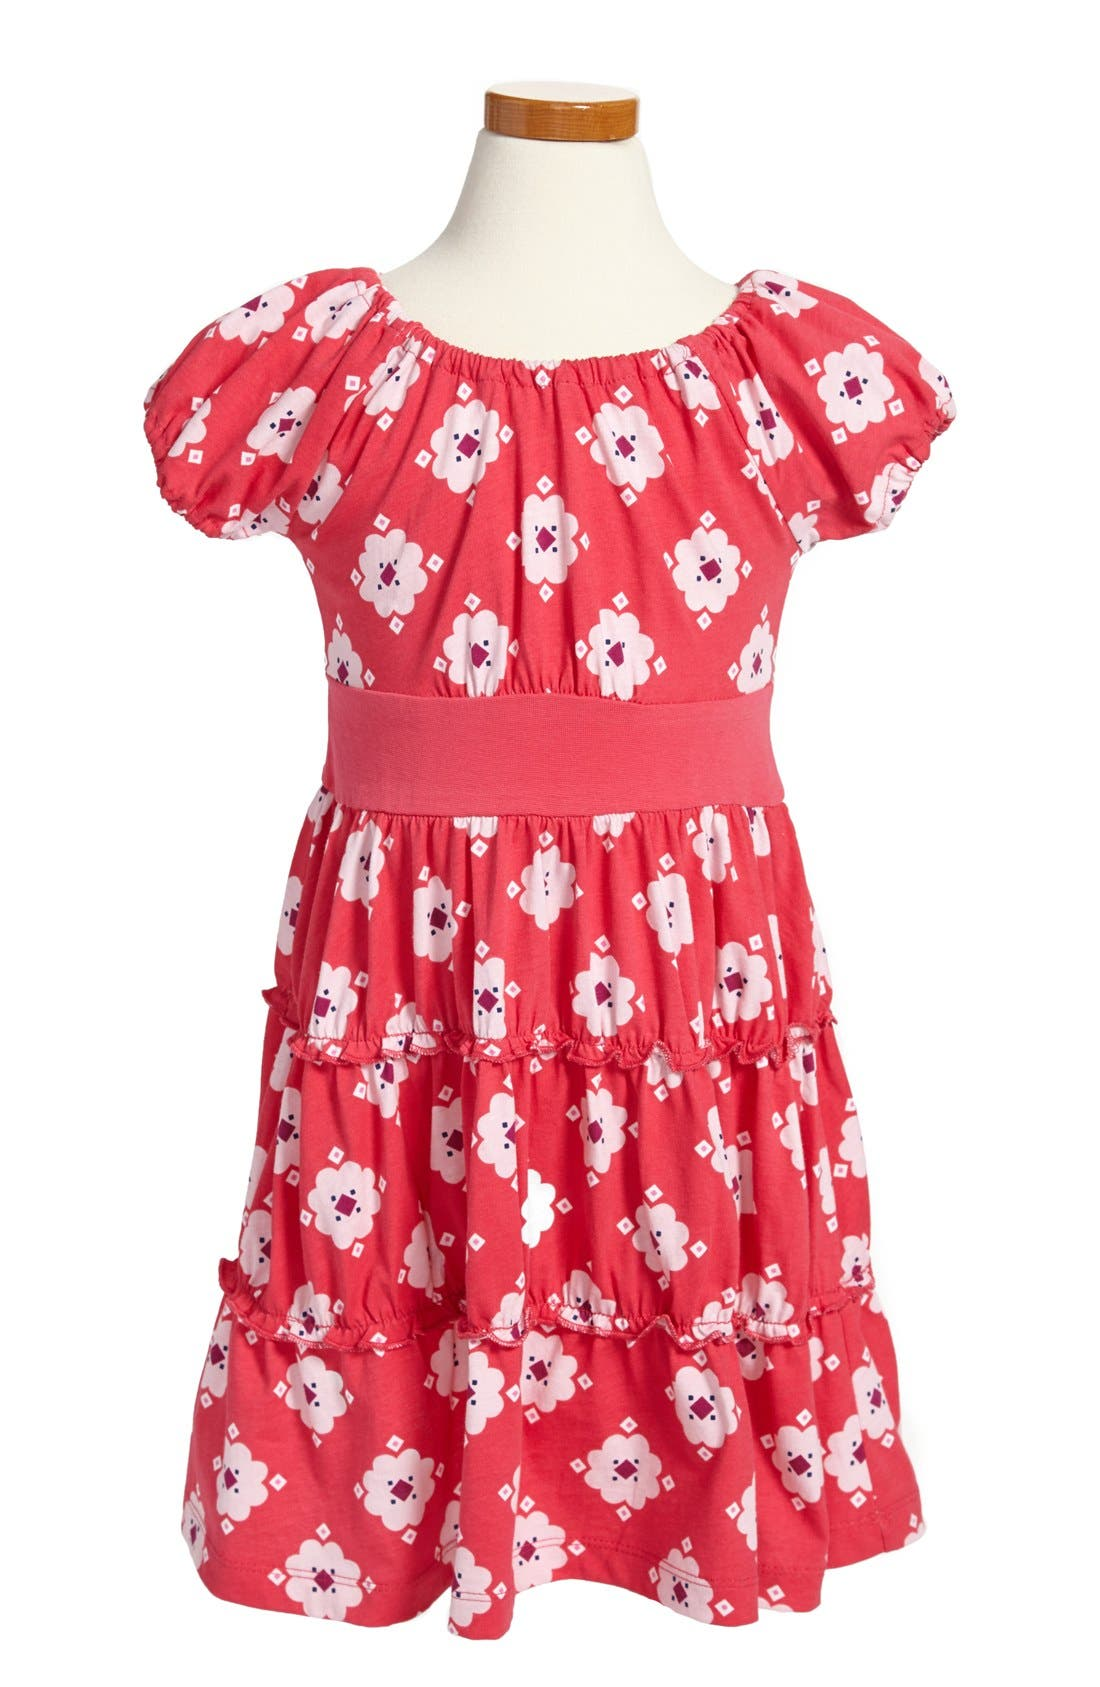 Alternate Image 1 Selected - Tea Collection 'Berber Floral' Twirl Dress (Baby Girls)